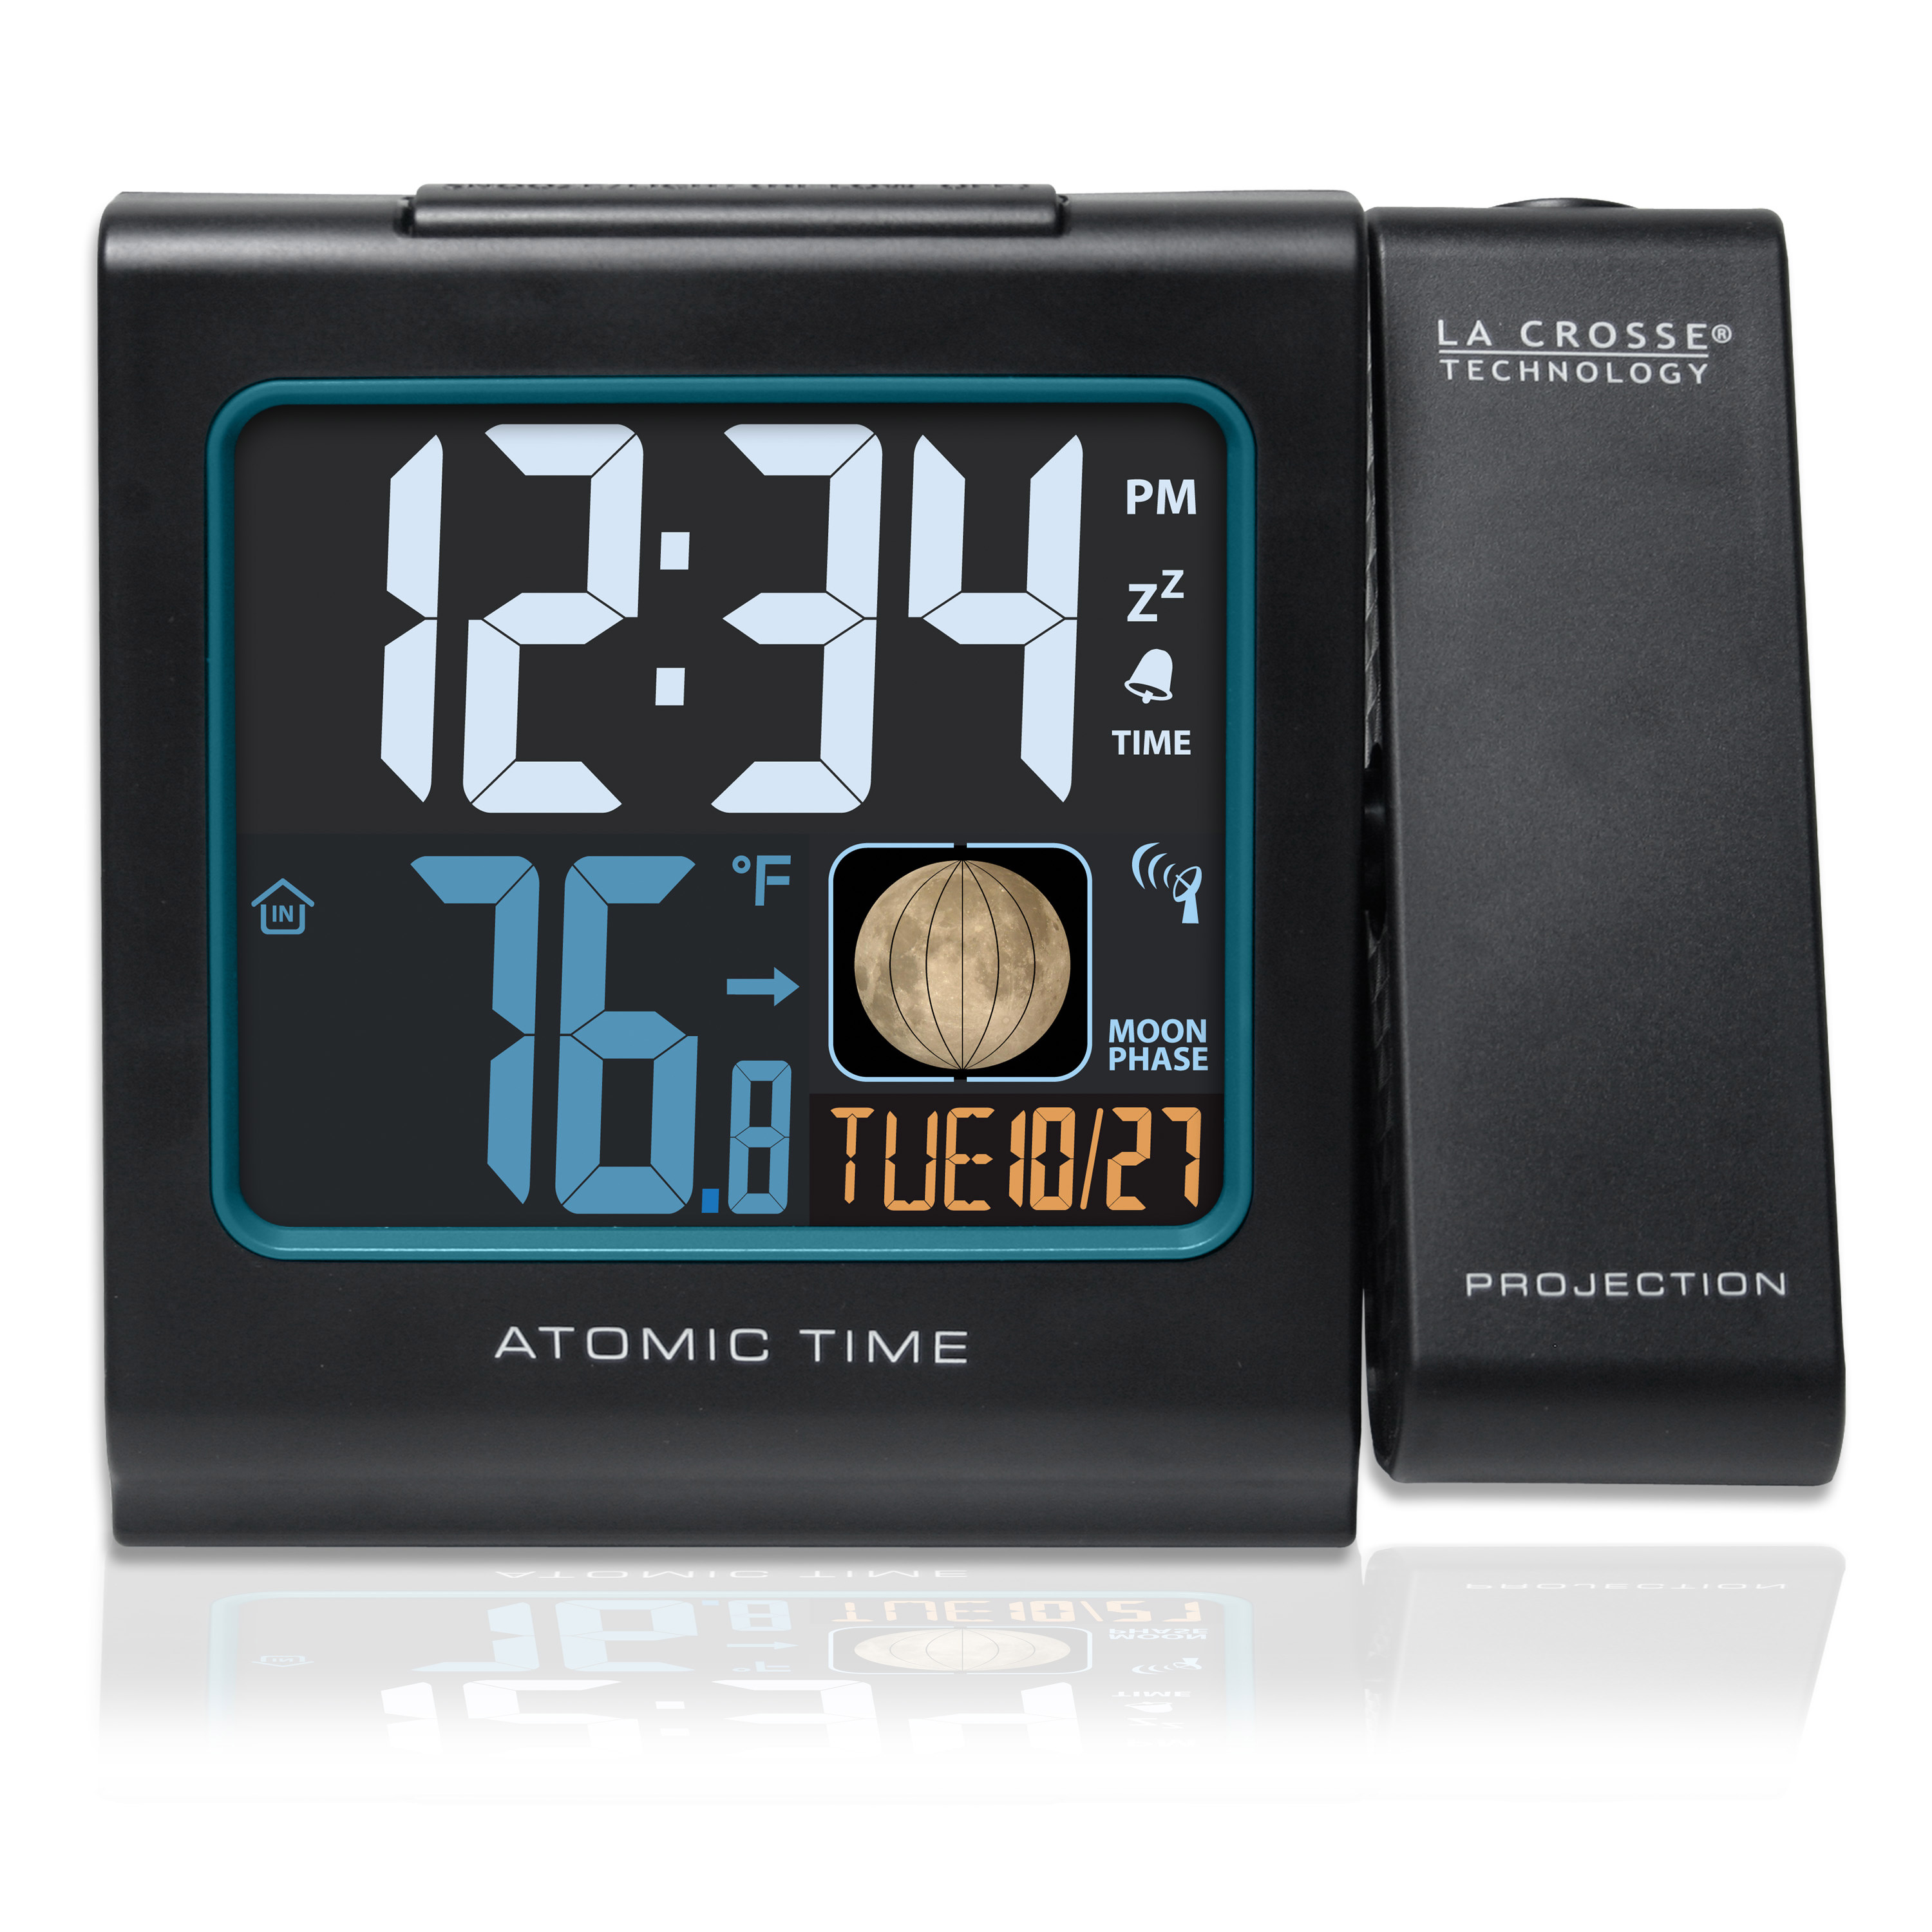 "La Crosse Technology 616-146A 5"" Color LCD Projection Alarm Clock with Moon Phase, Black"